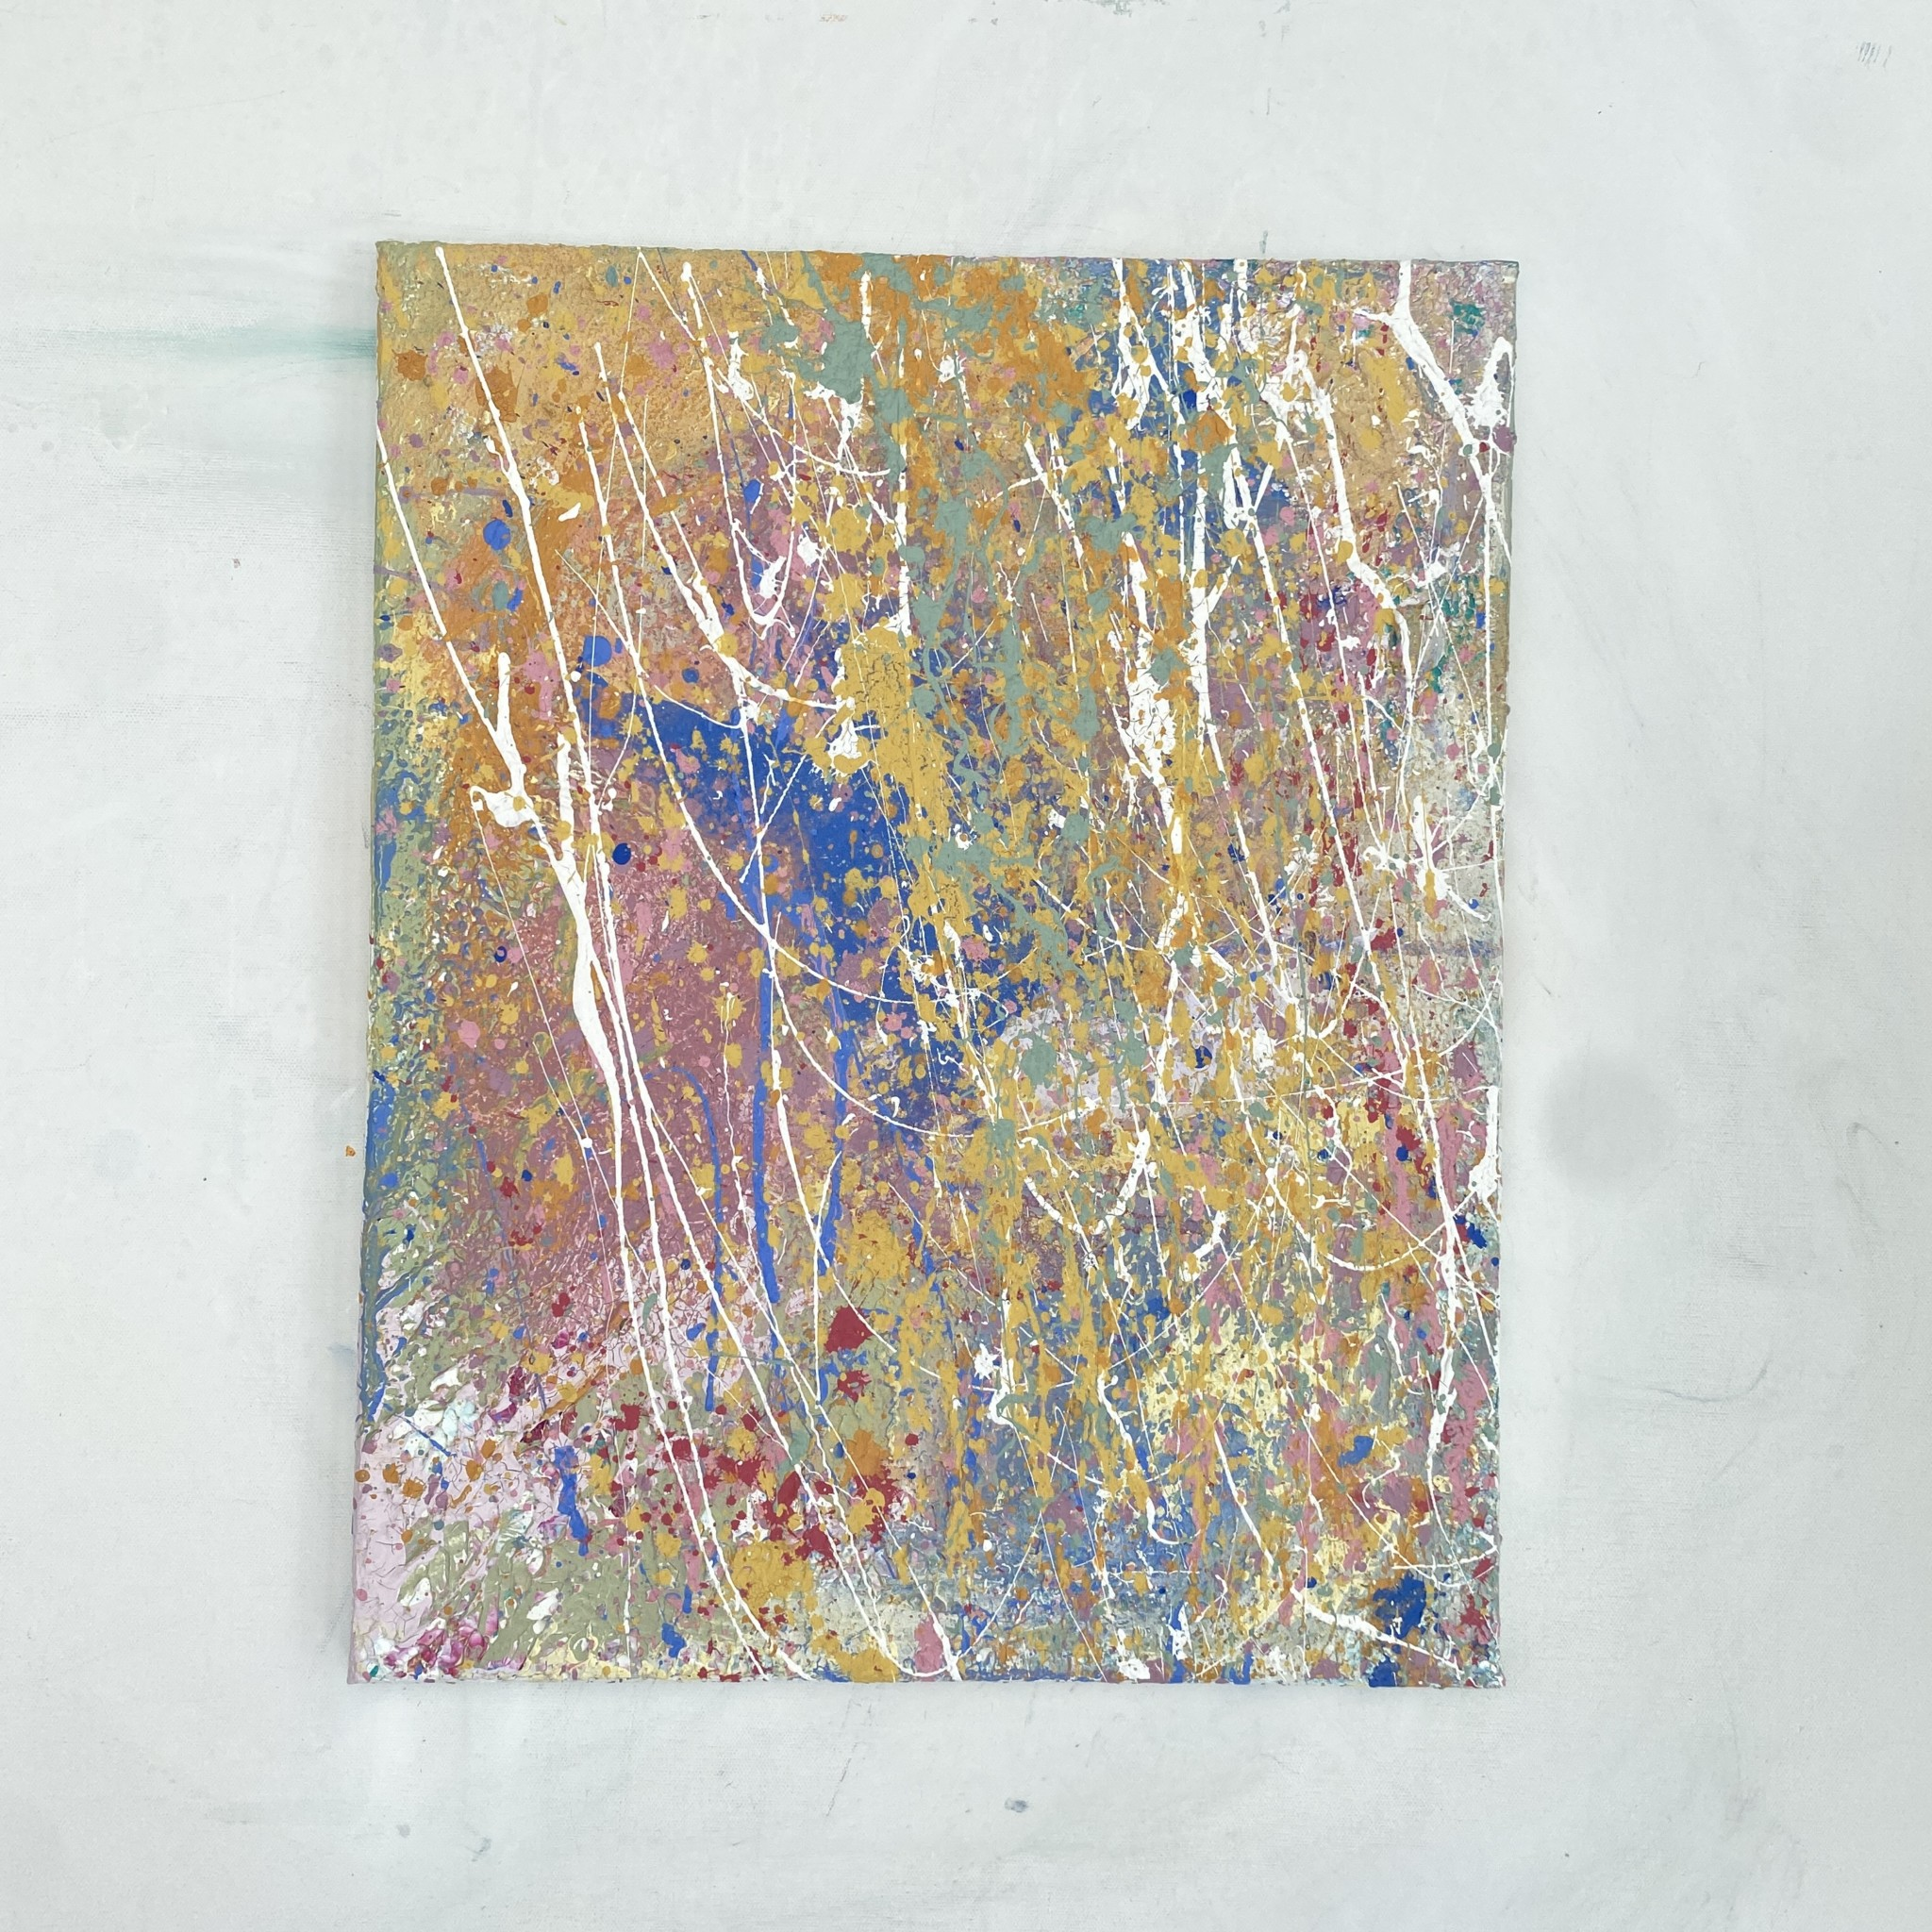 Gallery view of elemental an abstract original painting created with eco friendly paints by Emily Duchscherer Kirk.